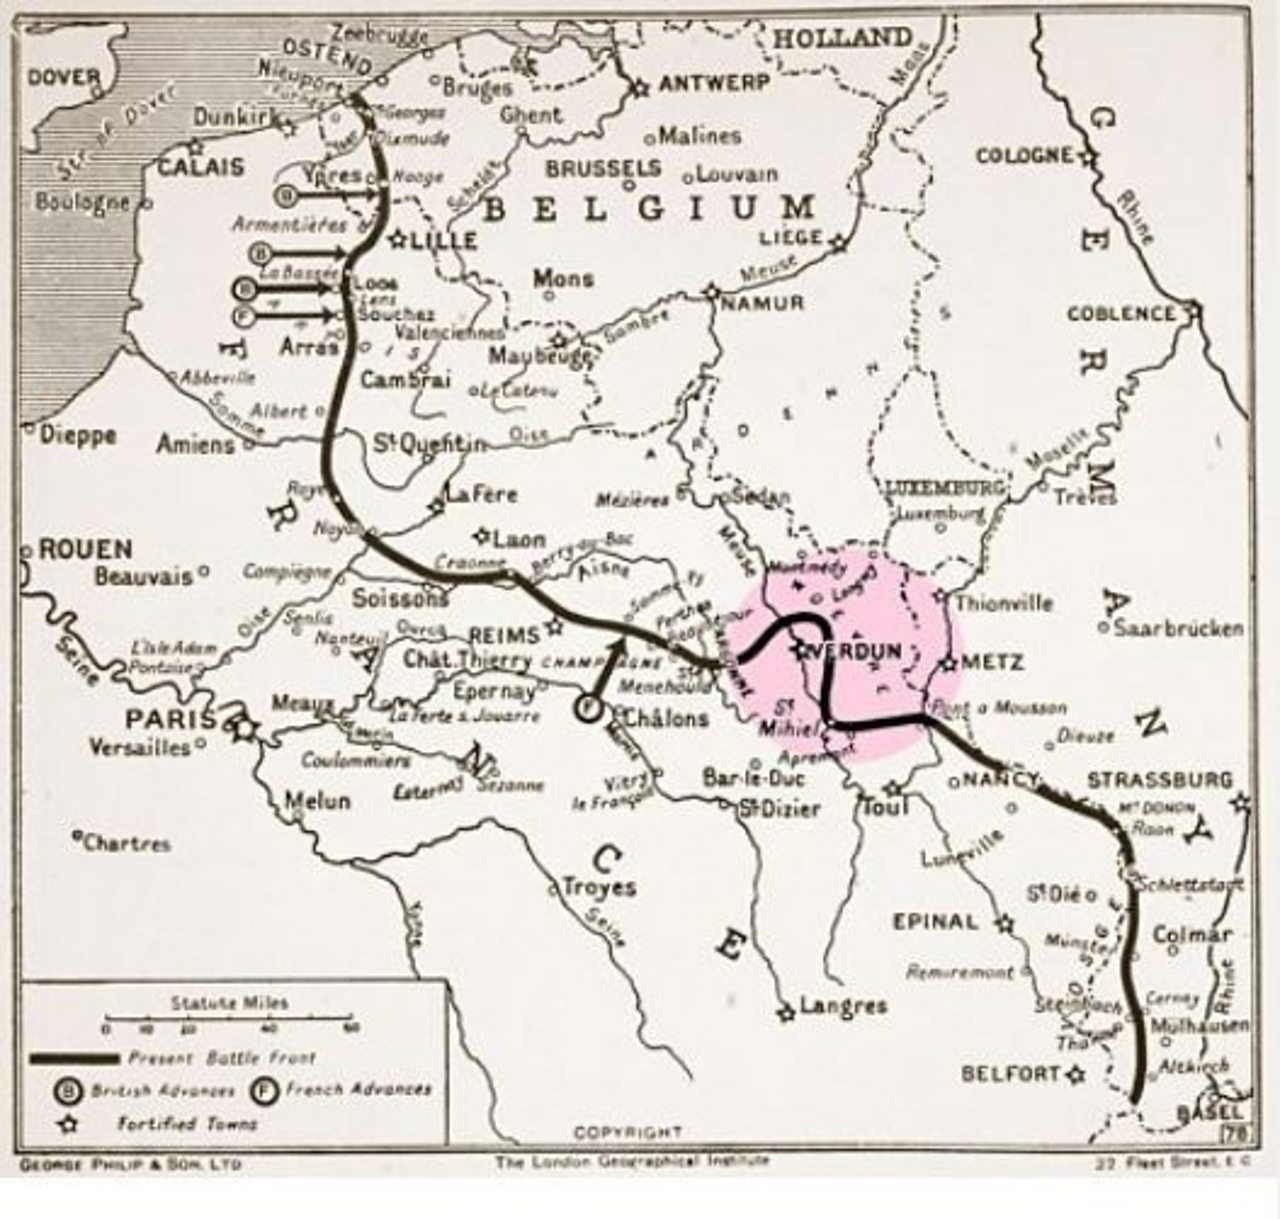 A map illustrating Verdun and the Western Front in 1915.